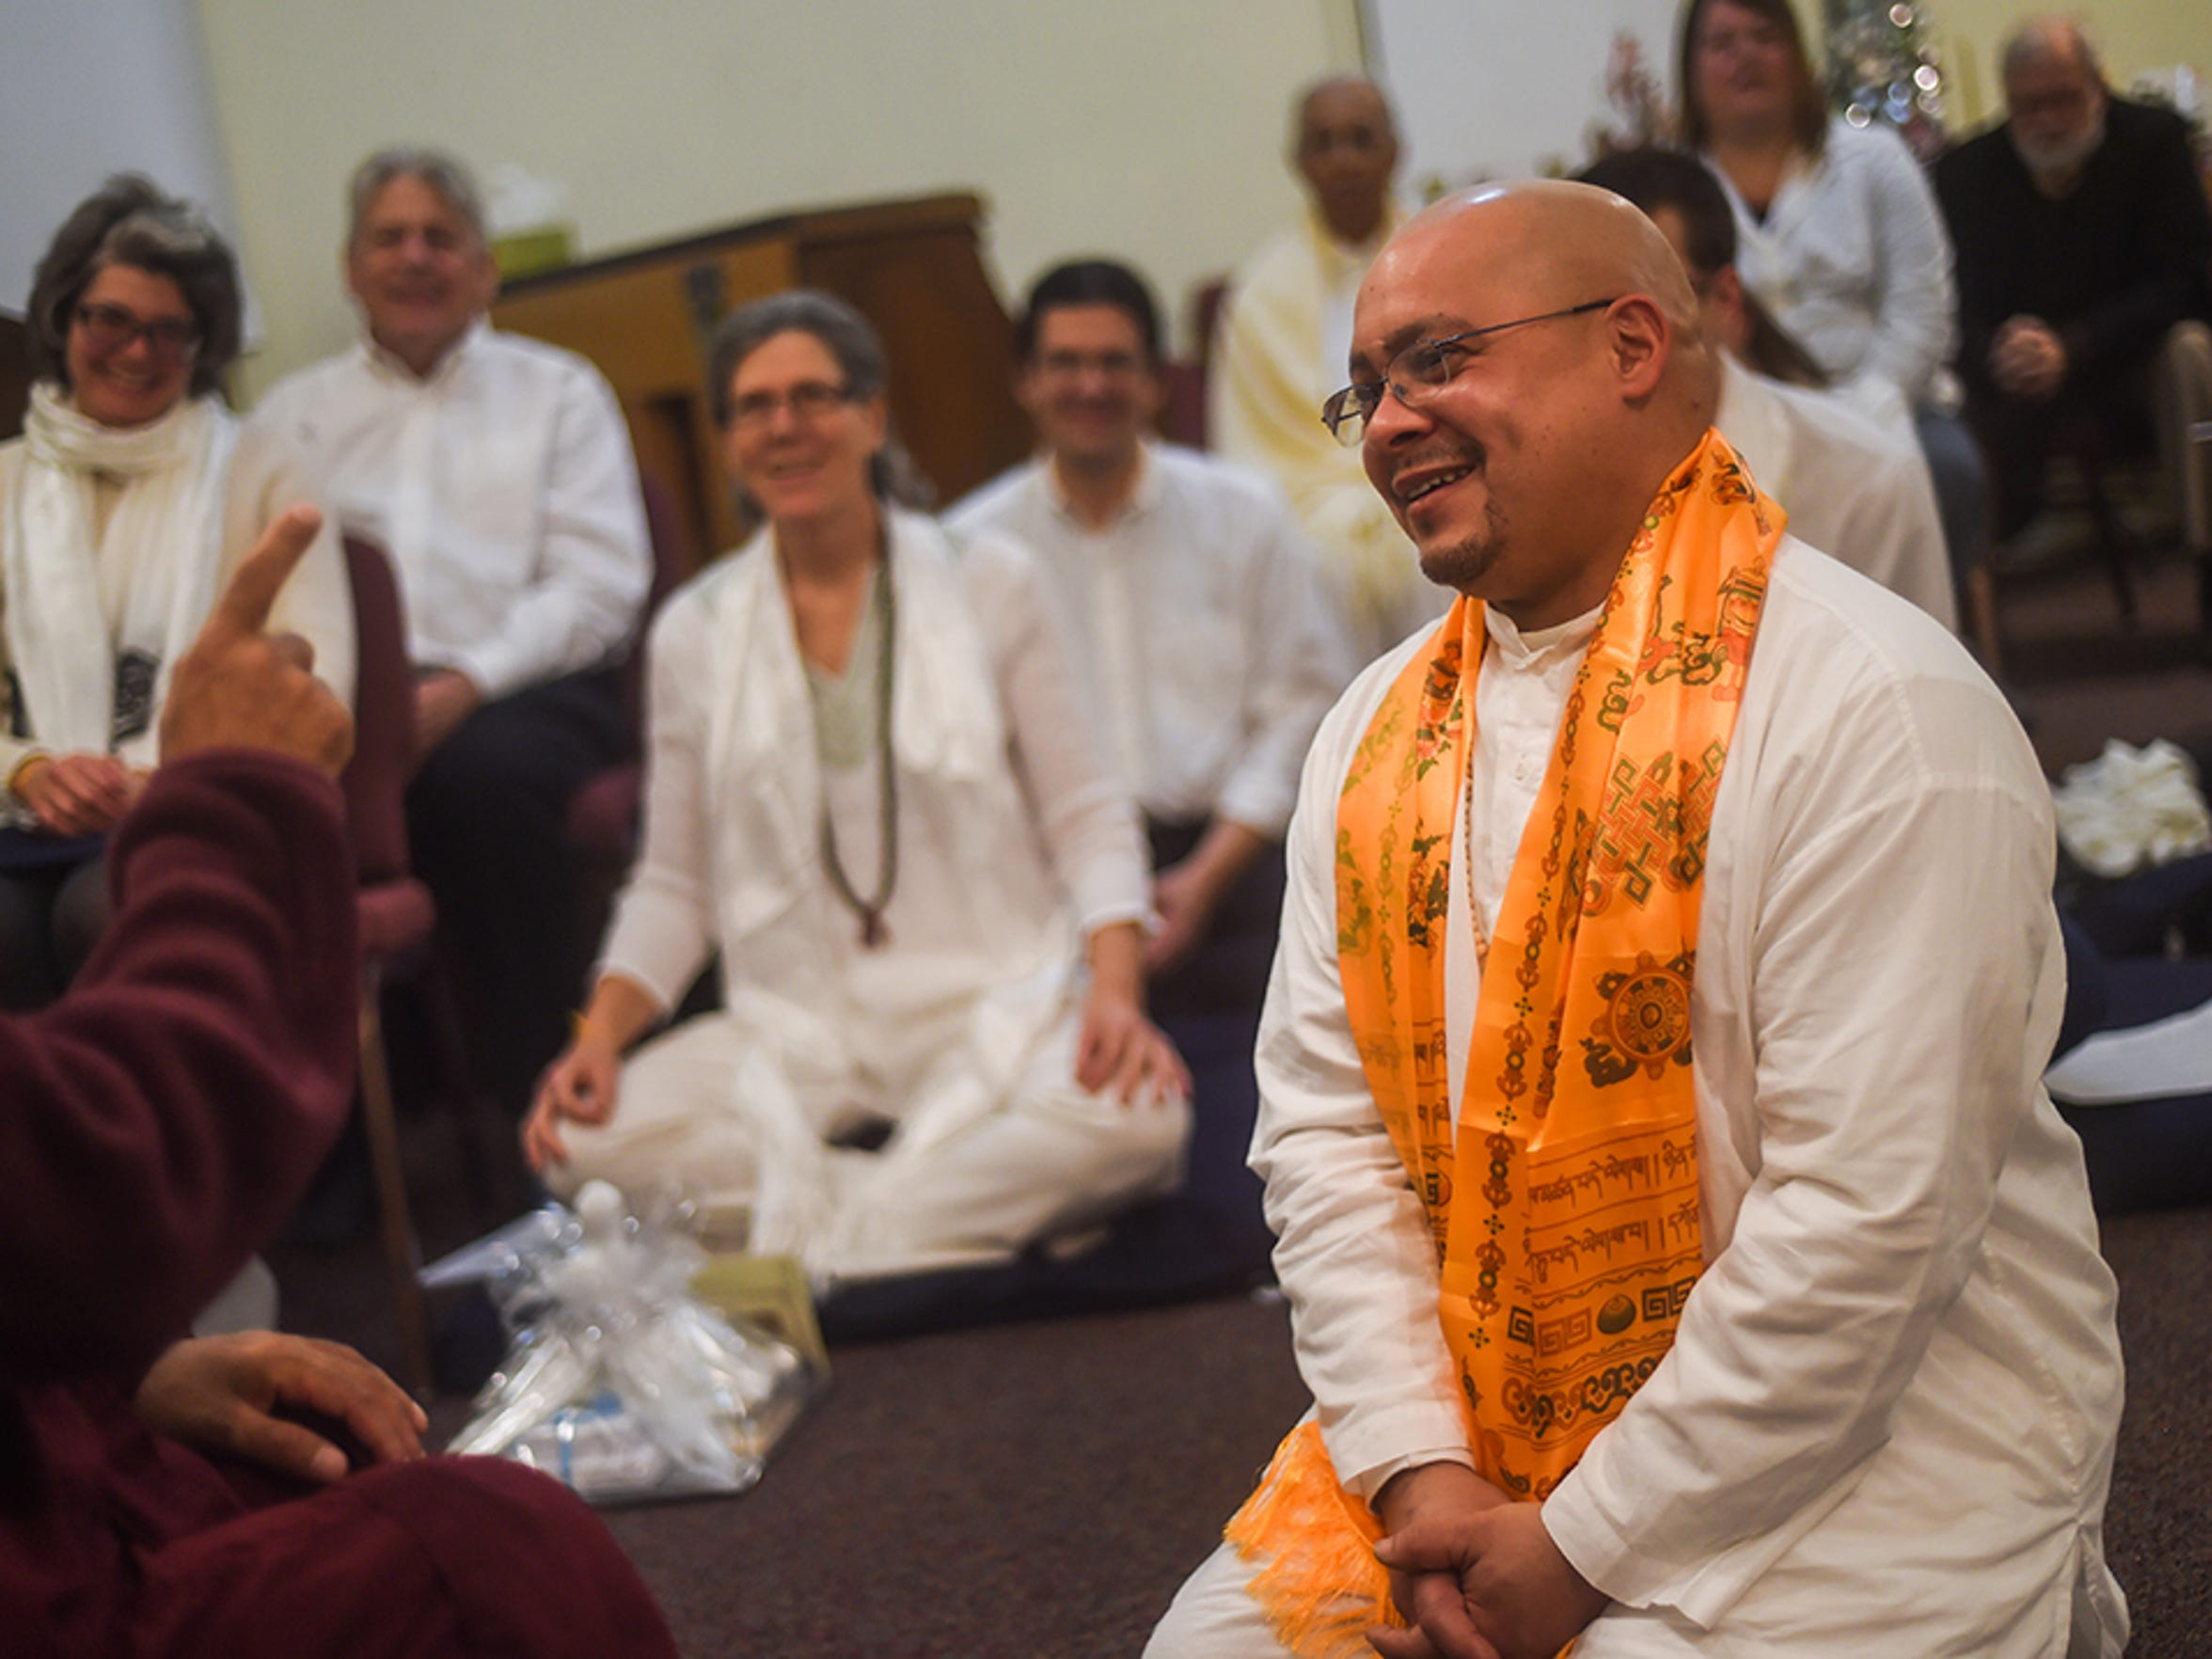 Angel Correa smiles while listening to Bhante Sujatha during a ceremony Dec 7, 2014, where Correa took his Buddhist Upasaka precepts. The precepts are a Buddhist concept that requires commitment to refraining from killing, stealing, conducting sexual misconduct, false speech and drug use.